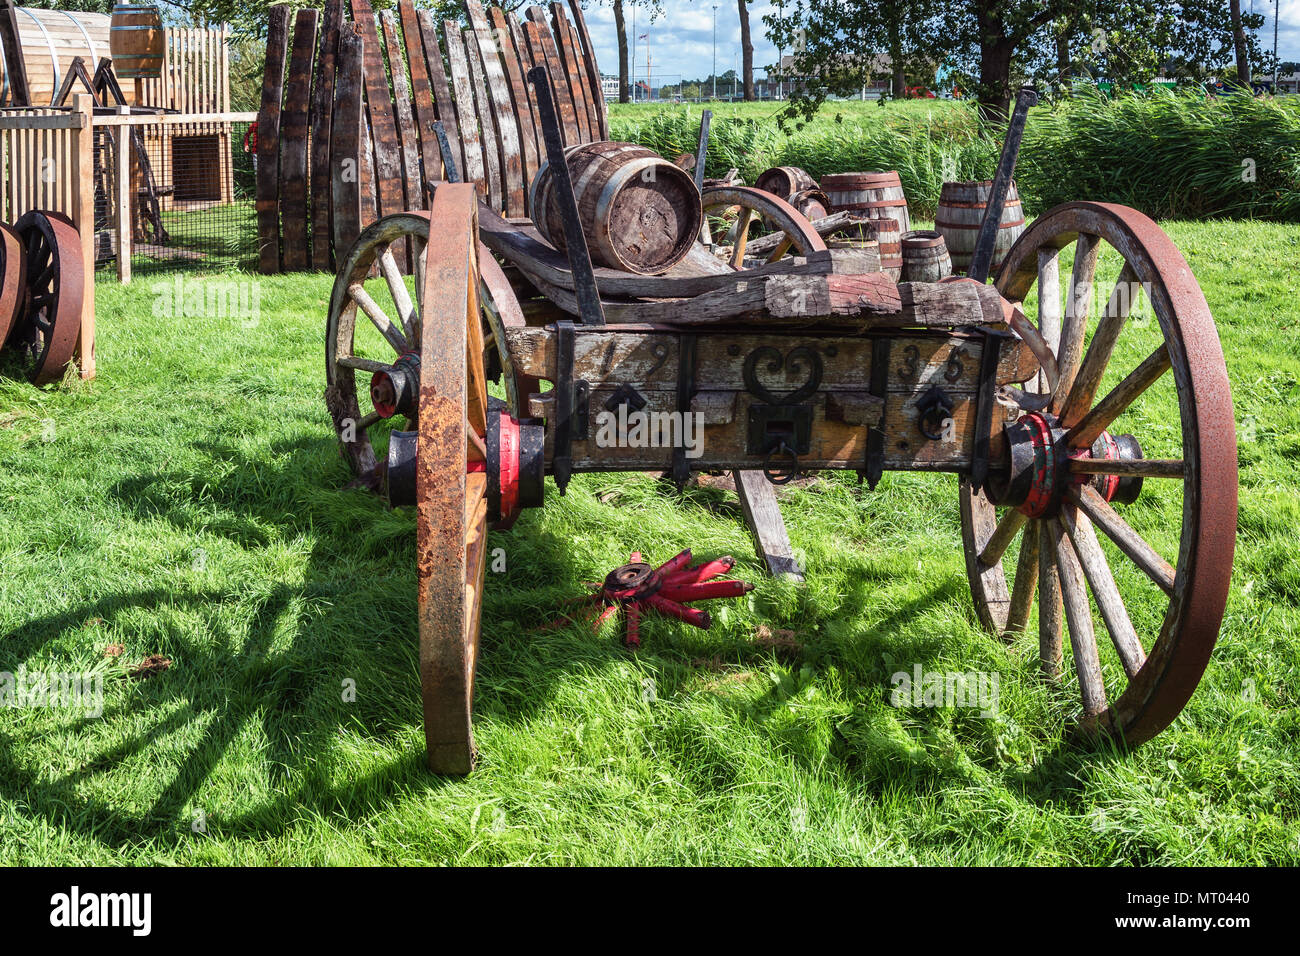 An old barrel car parked in the grass. - Stock Image